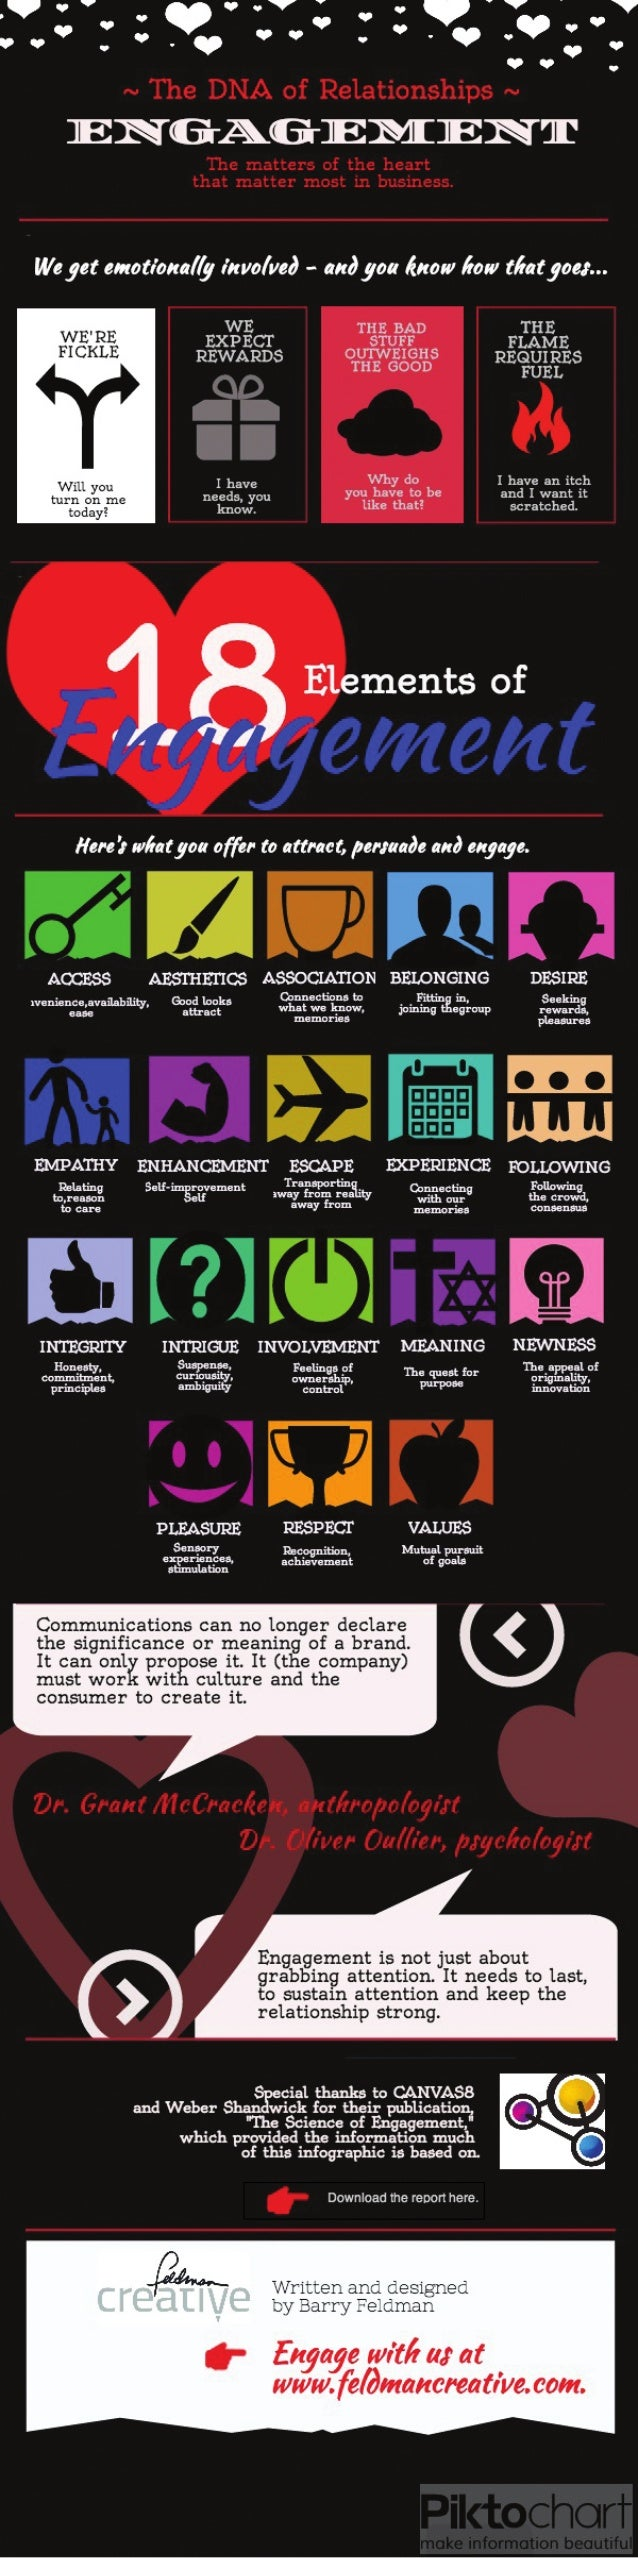 Elements of Engagement infographic - by Feldman Creative